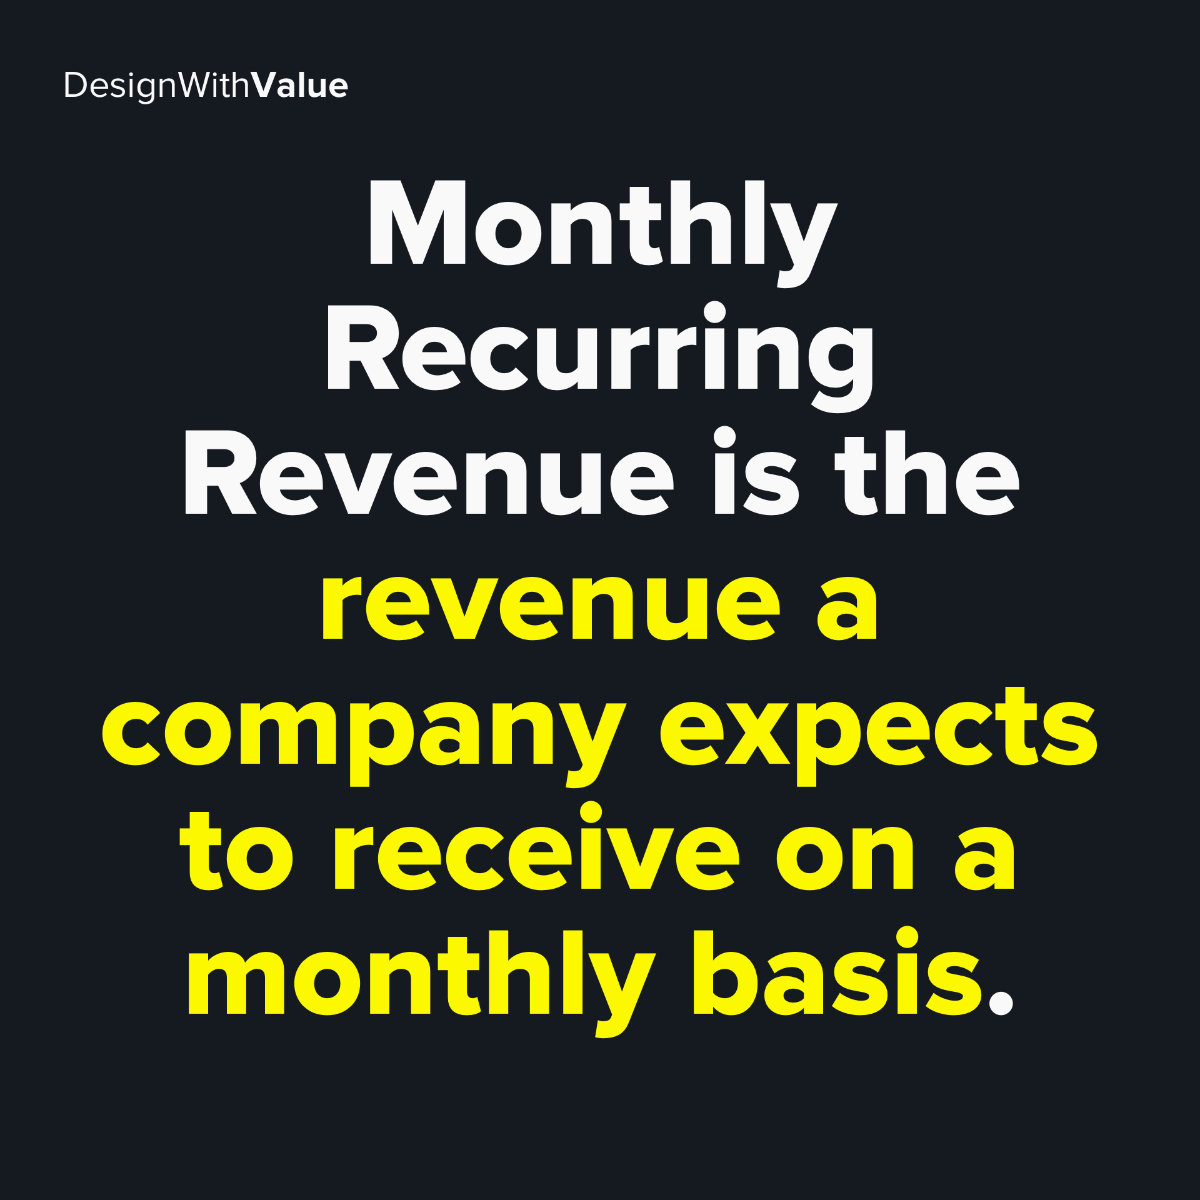 Monthly recurring revenue is the revenue a company expects to receive on a monthly basis